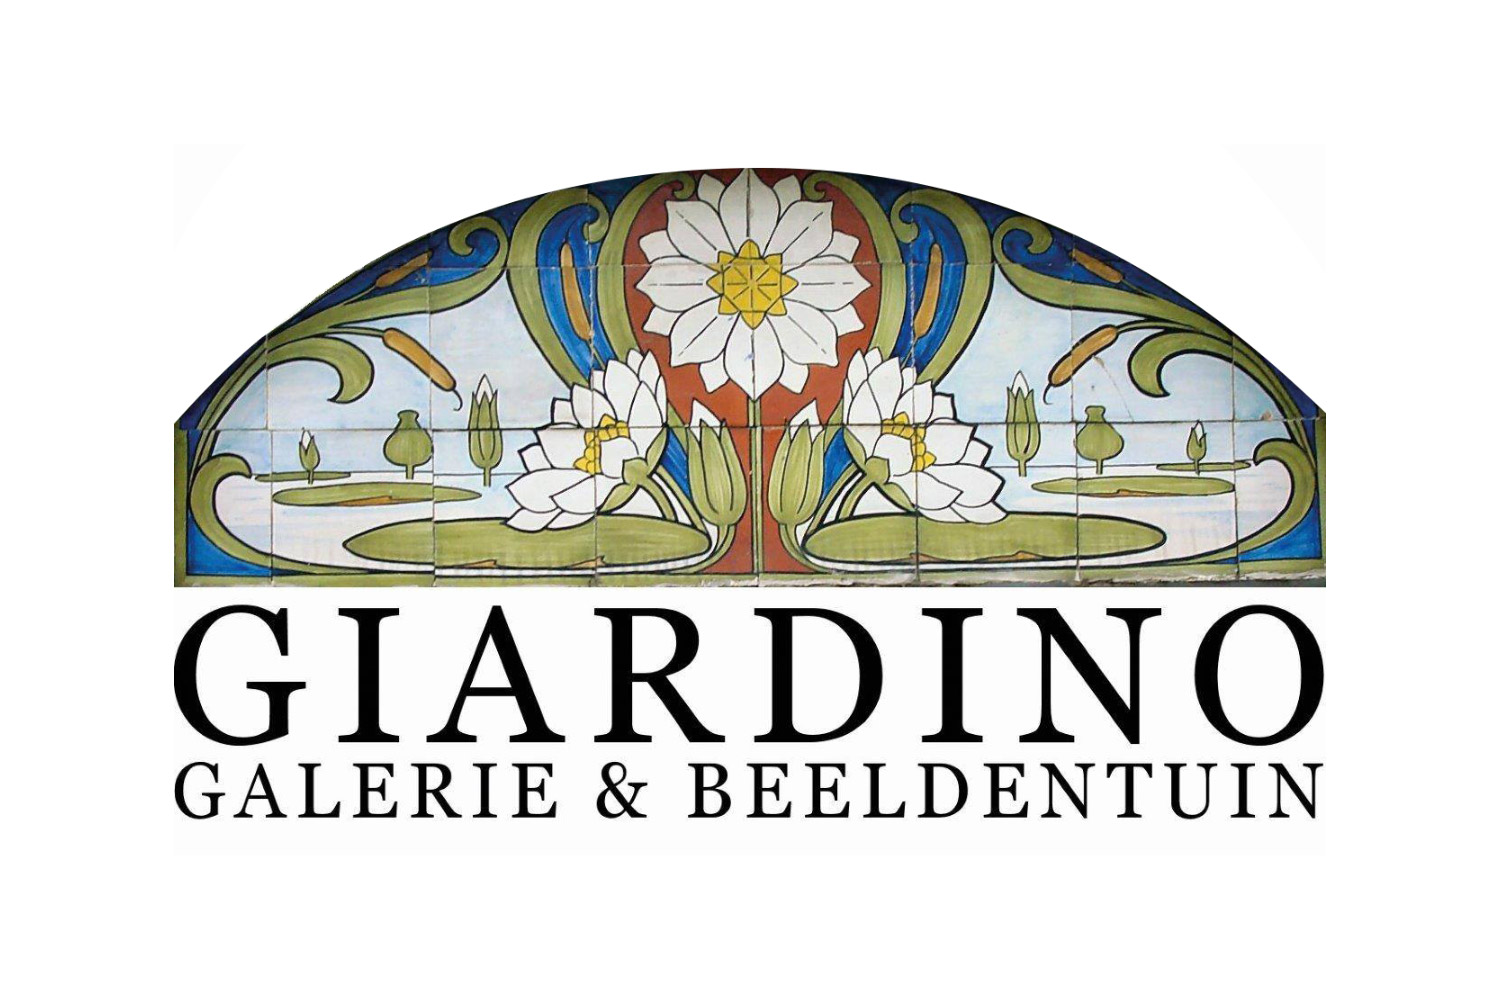 Giardino Gallery and Sculpture Garden – Berg en Terblijt - Astrid Huisman-Biemans